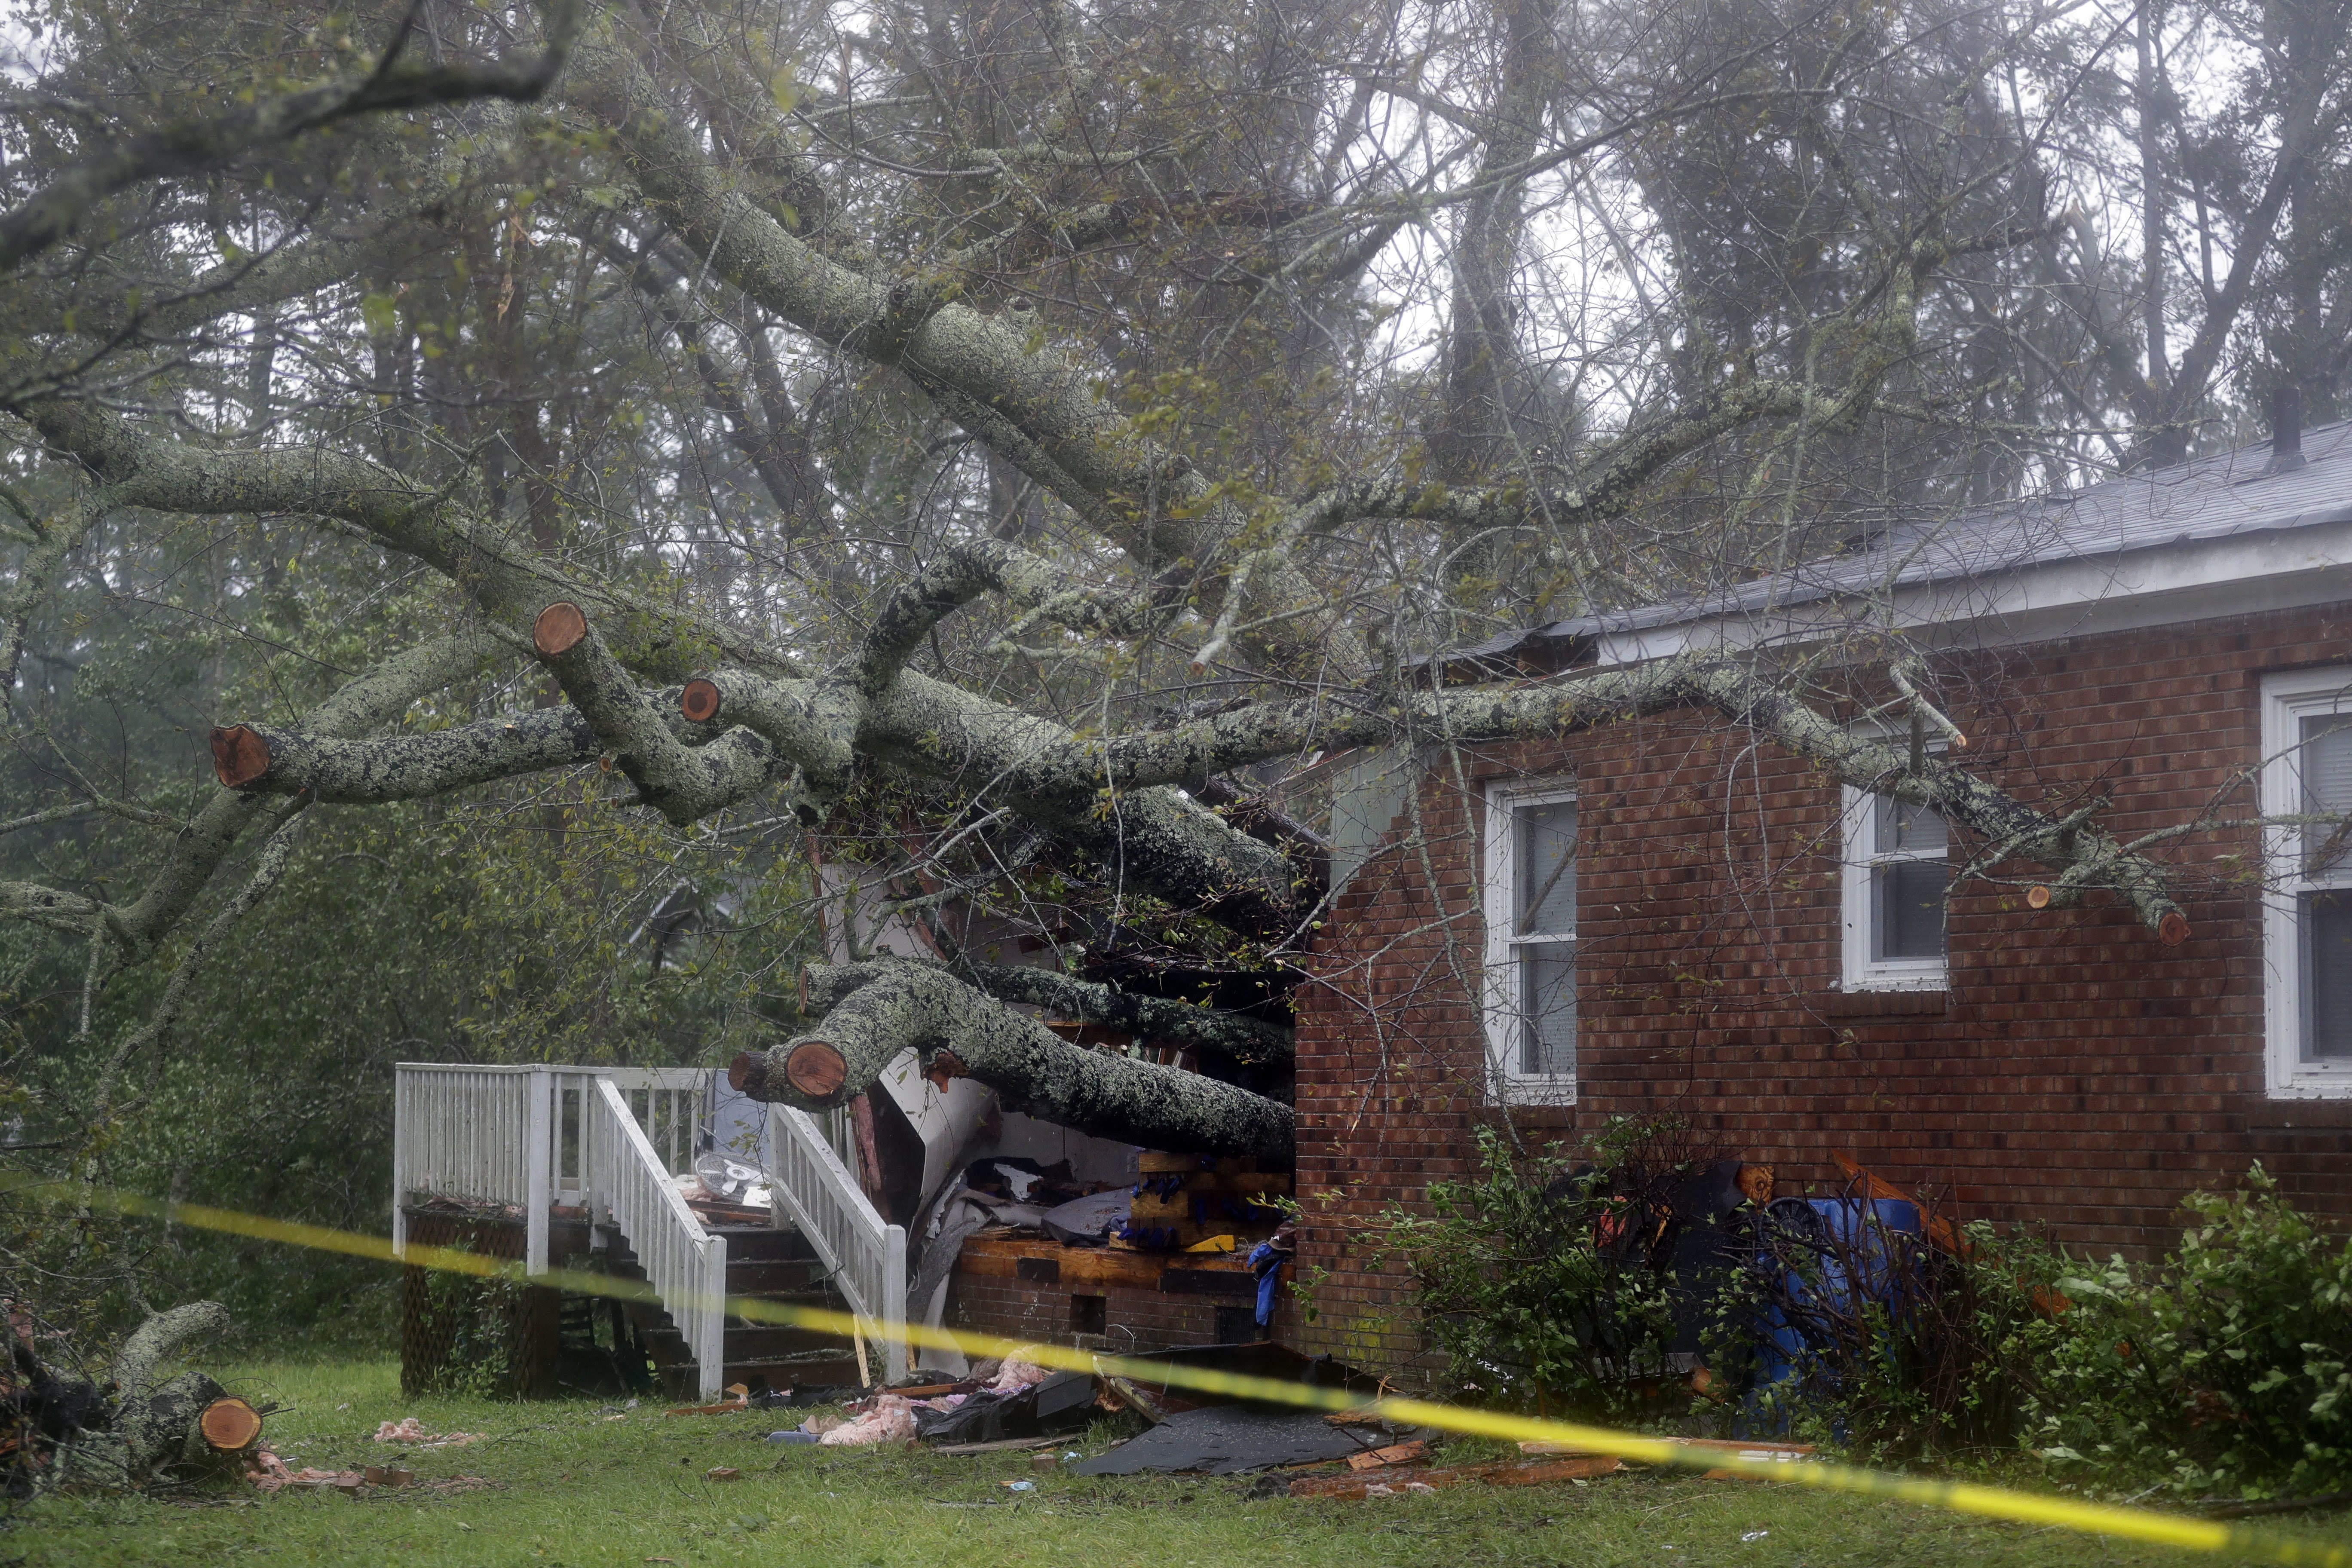 <p>A fallen tree is shown after it crashed through the home where a woman and her baby were killed in Wilmington, N.C., after Hurricane Florence made landfall Friday, Sept. 14, 2018. (Photo: Chuck Burton/AP) </p>